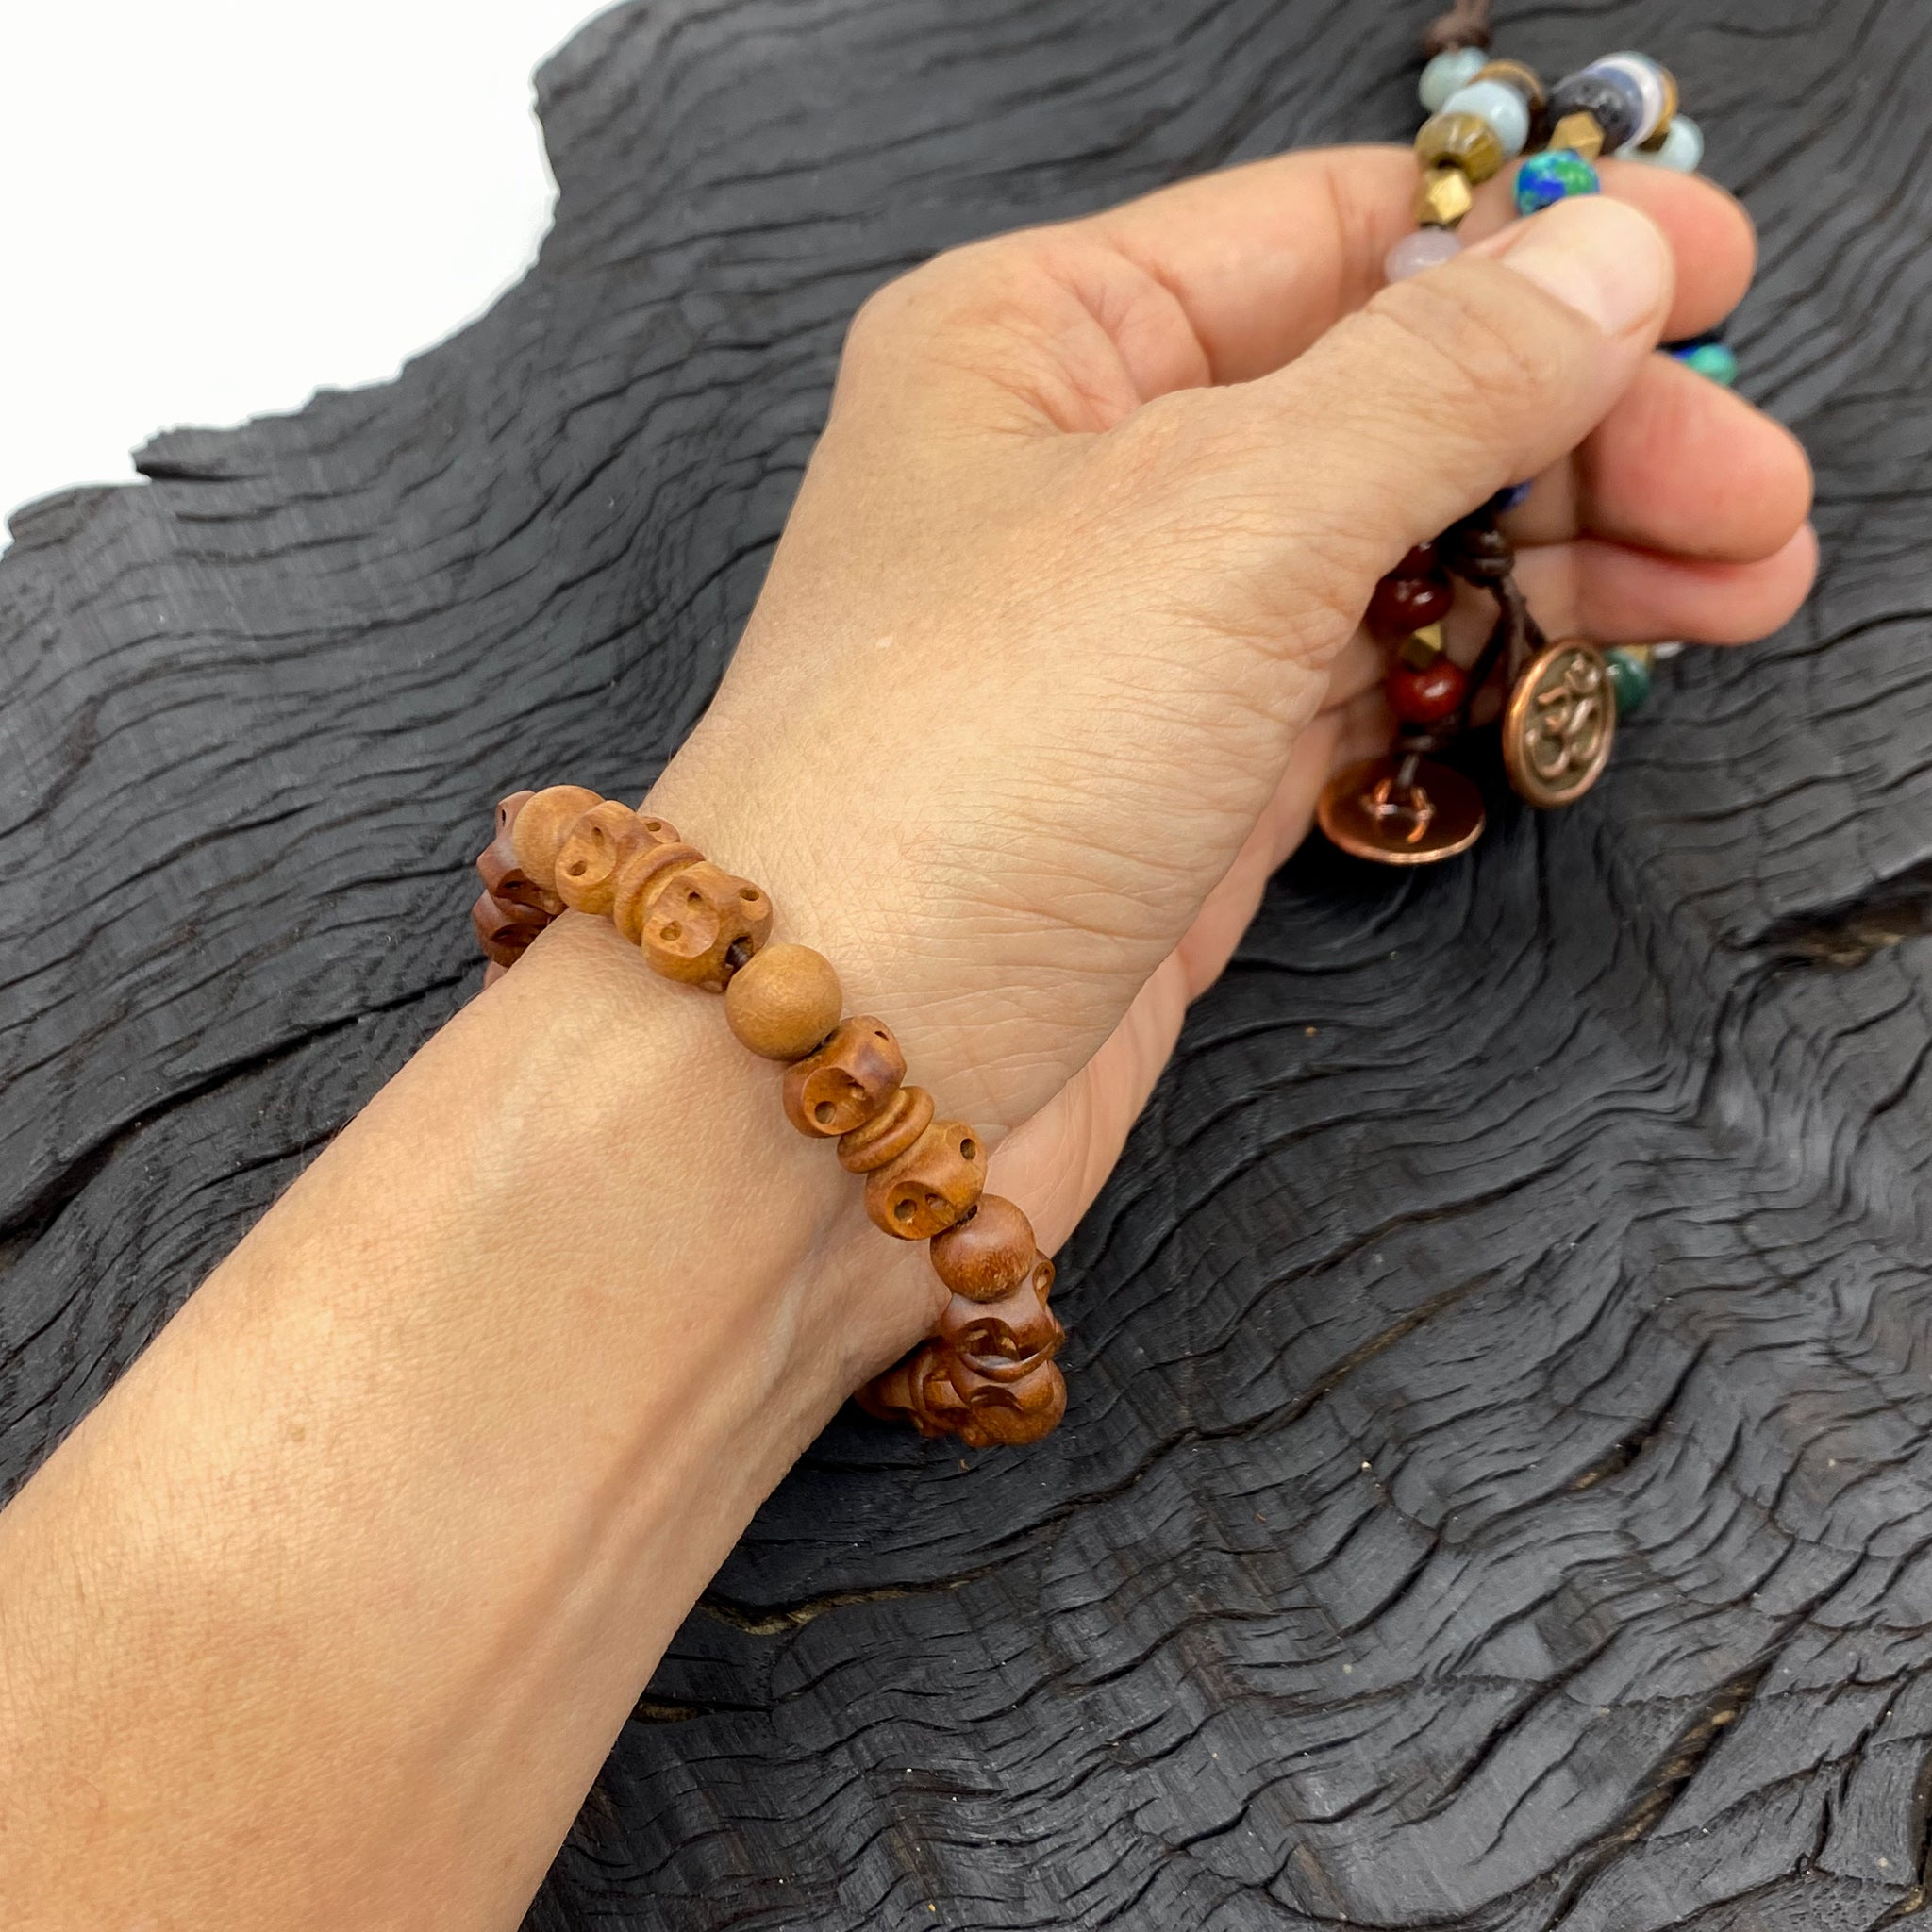 Wrist Mala with Dorje (thunderbolt) - 8mm Wood Beads